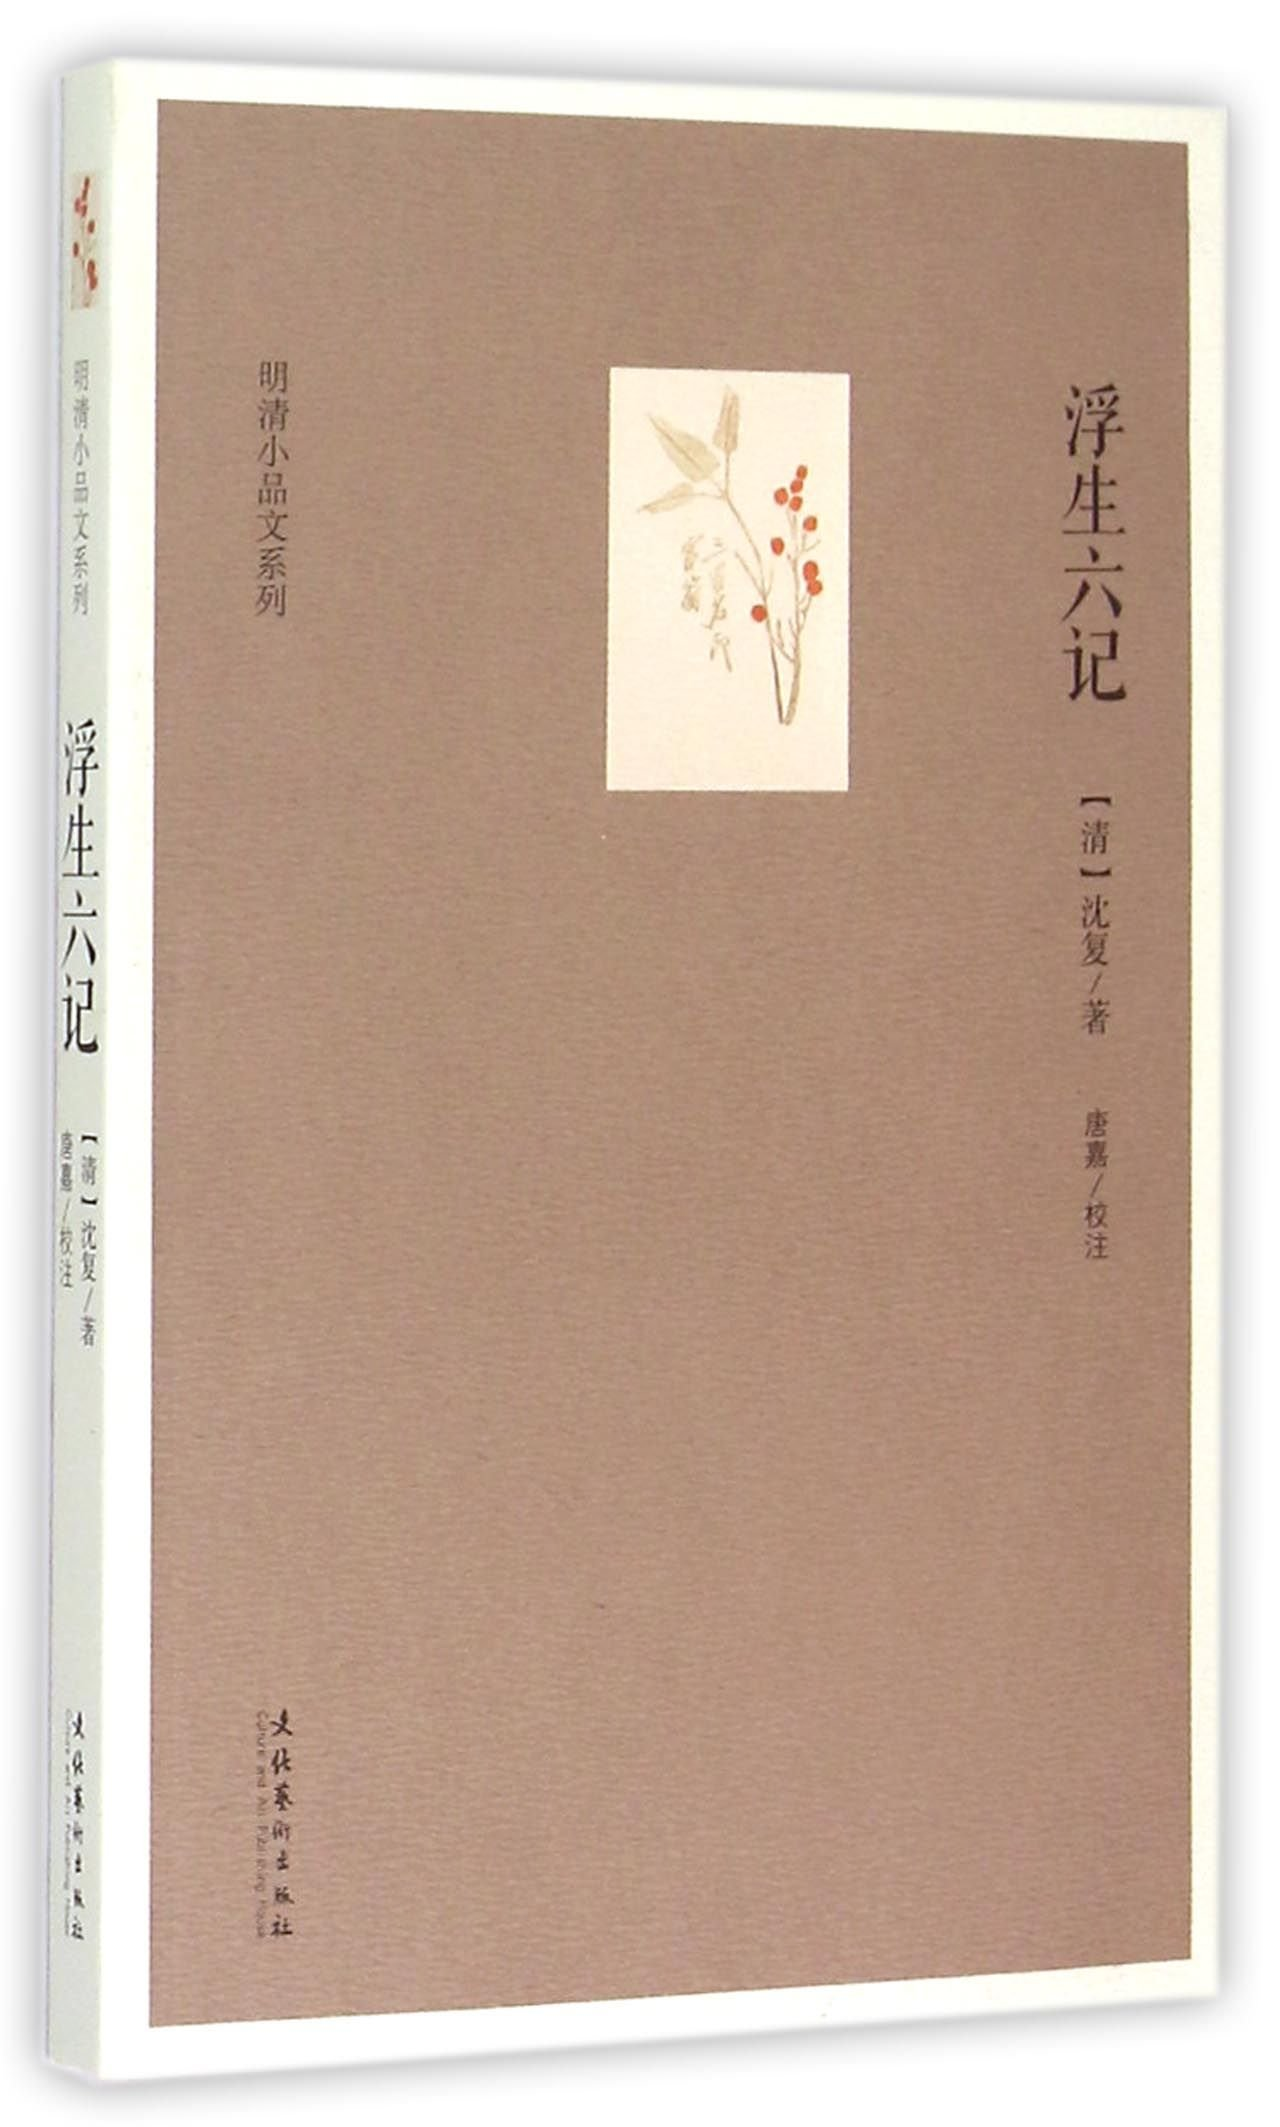 Six Chapters of A Floating Life (Chinese Edition) ebook